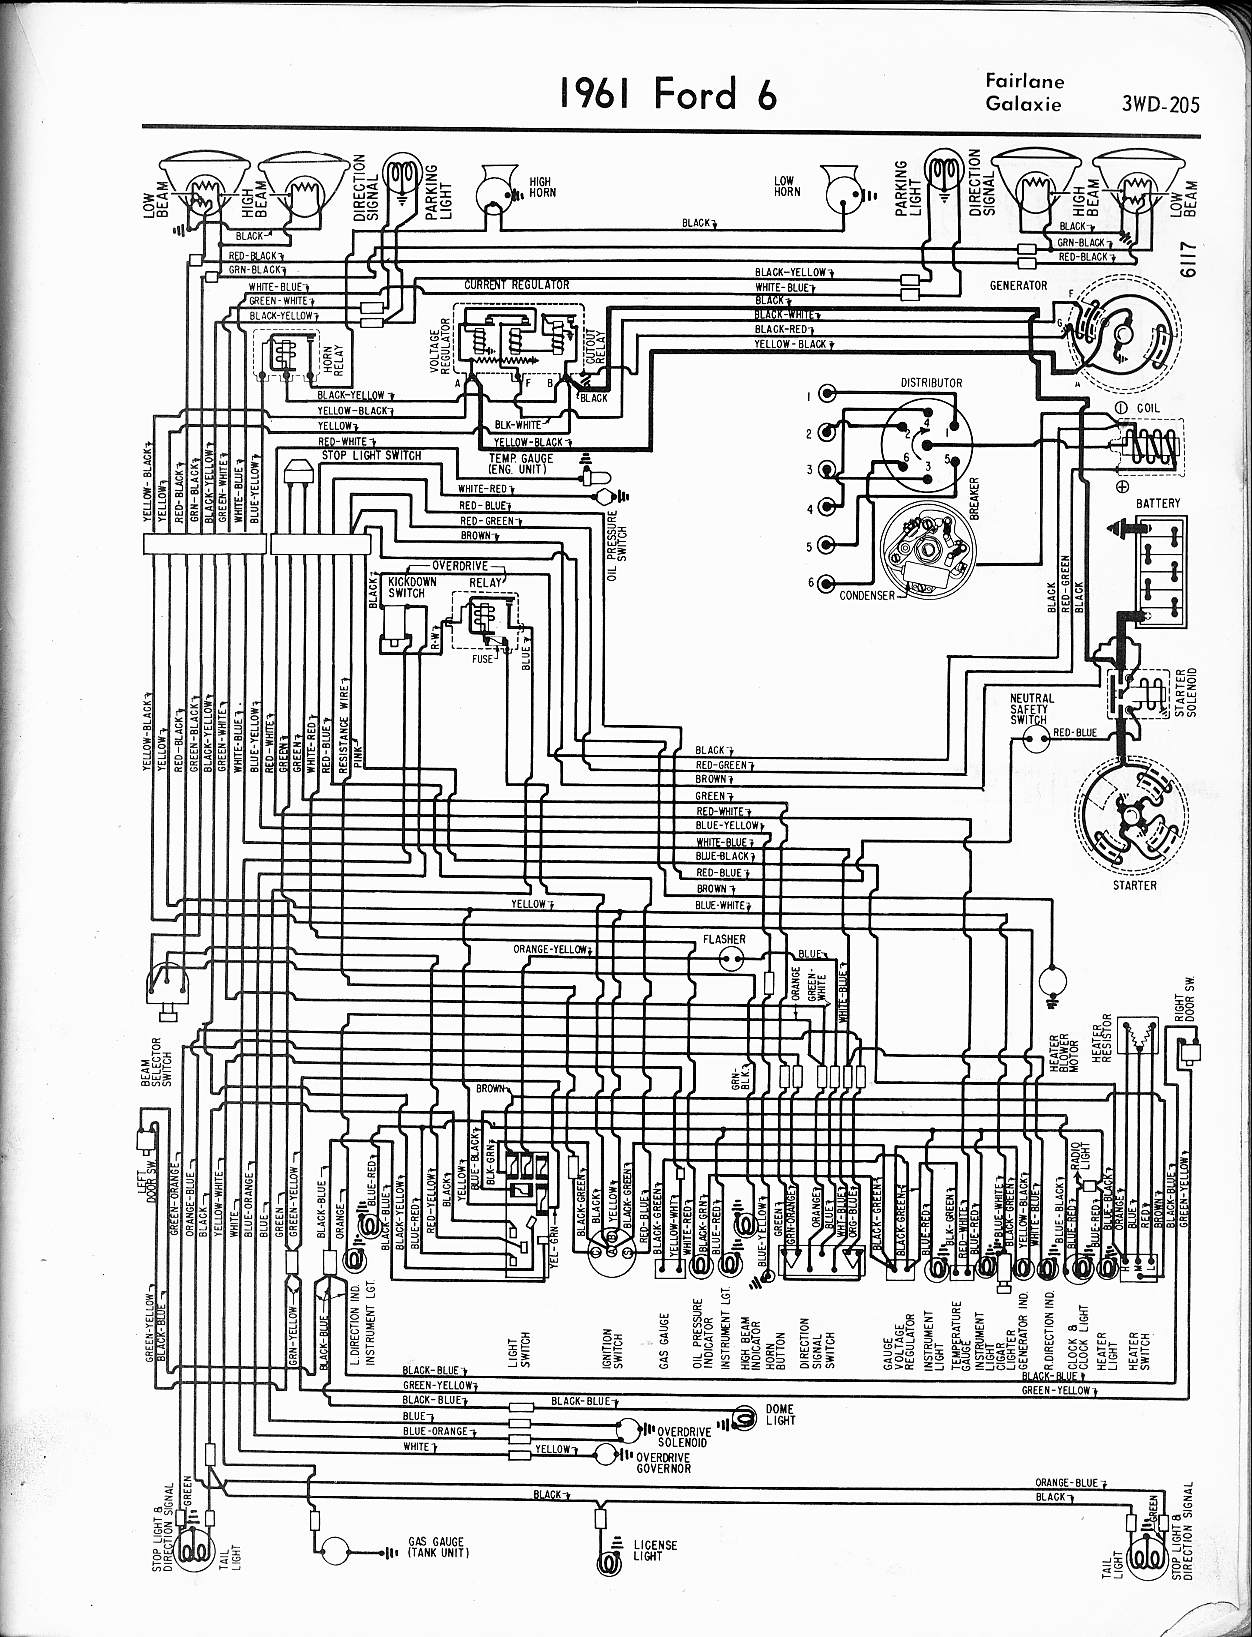 MWire5765 205 wiring diagram model a ford the wiring diagram readingrat net Ford E 350 Wiring Diagrams at mr168.co